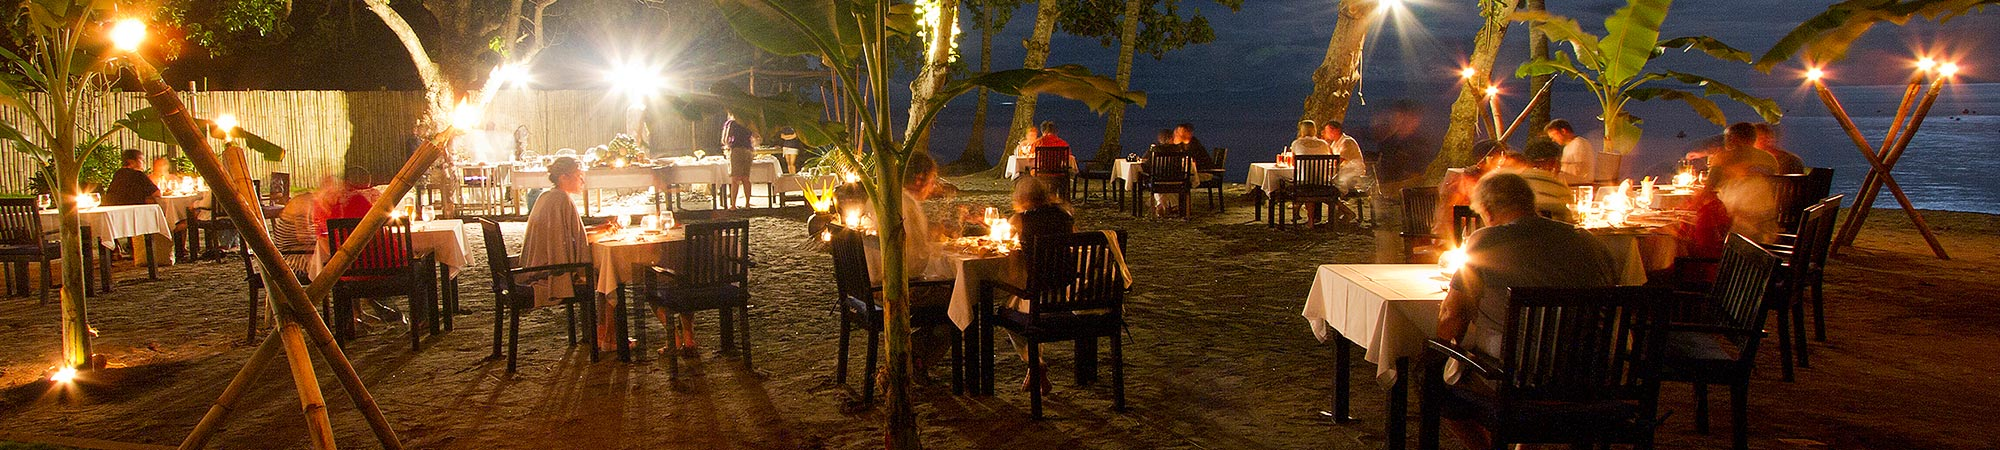 Fine dining at Atmosphere Resorts & Spa Philippines - join our weekly beach BBQ or order from our extensive menus